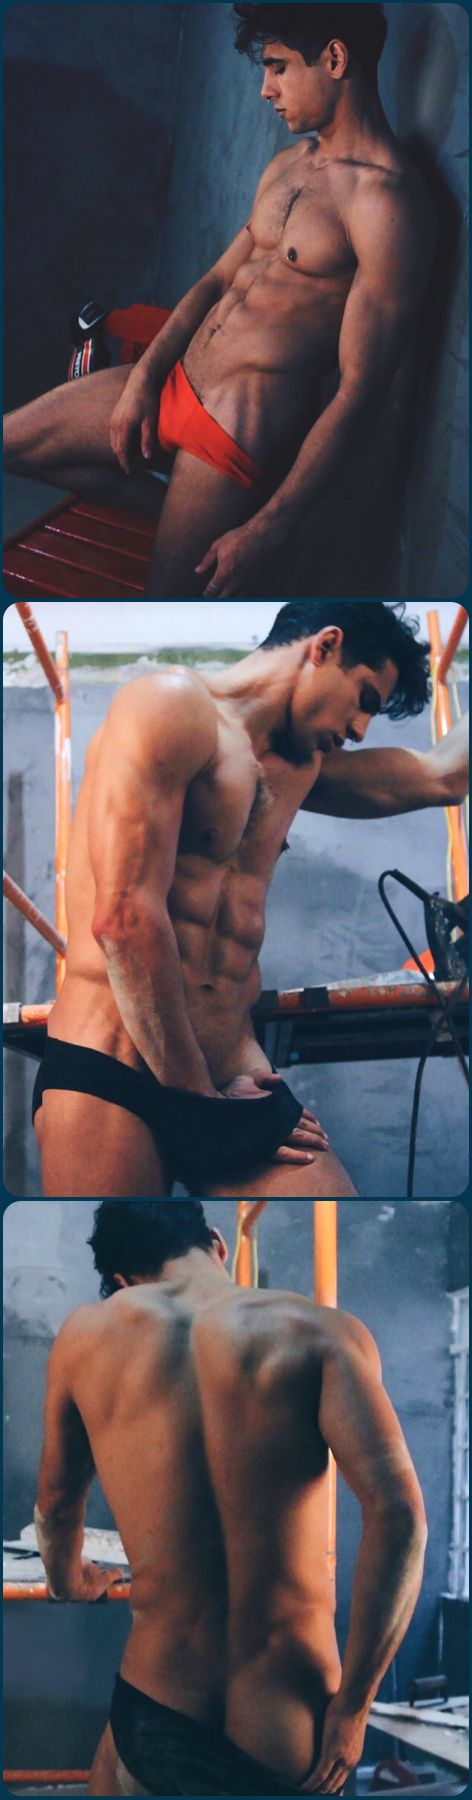 Male Model, Good Looking, Beautiful Man, Guy, Dude, Hot, Sexy, Handsome, Eye Candy, Muscle, Hunk, Abs, Sixpack, Back, Bum, Butt, Shirtless, Undies, Underwear, Bulge 男性モデル アンダーウェア 下着